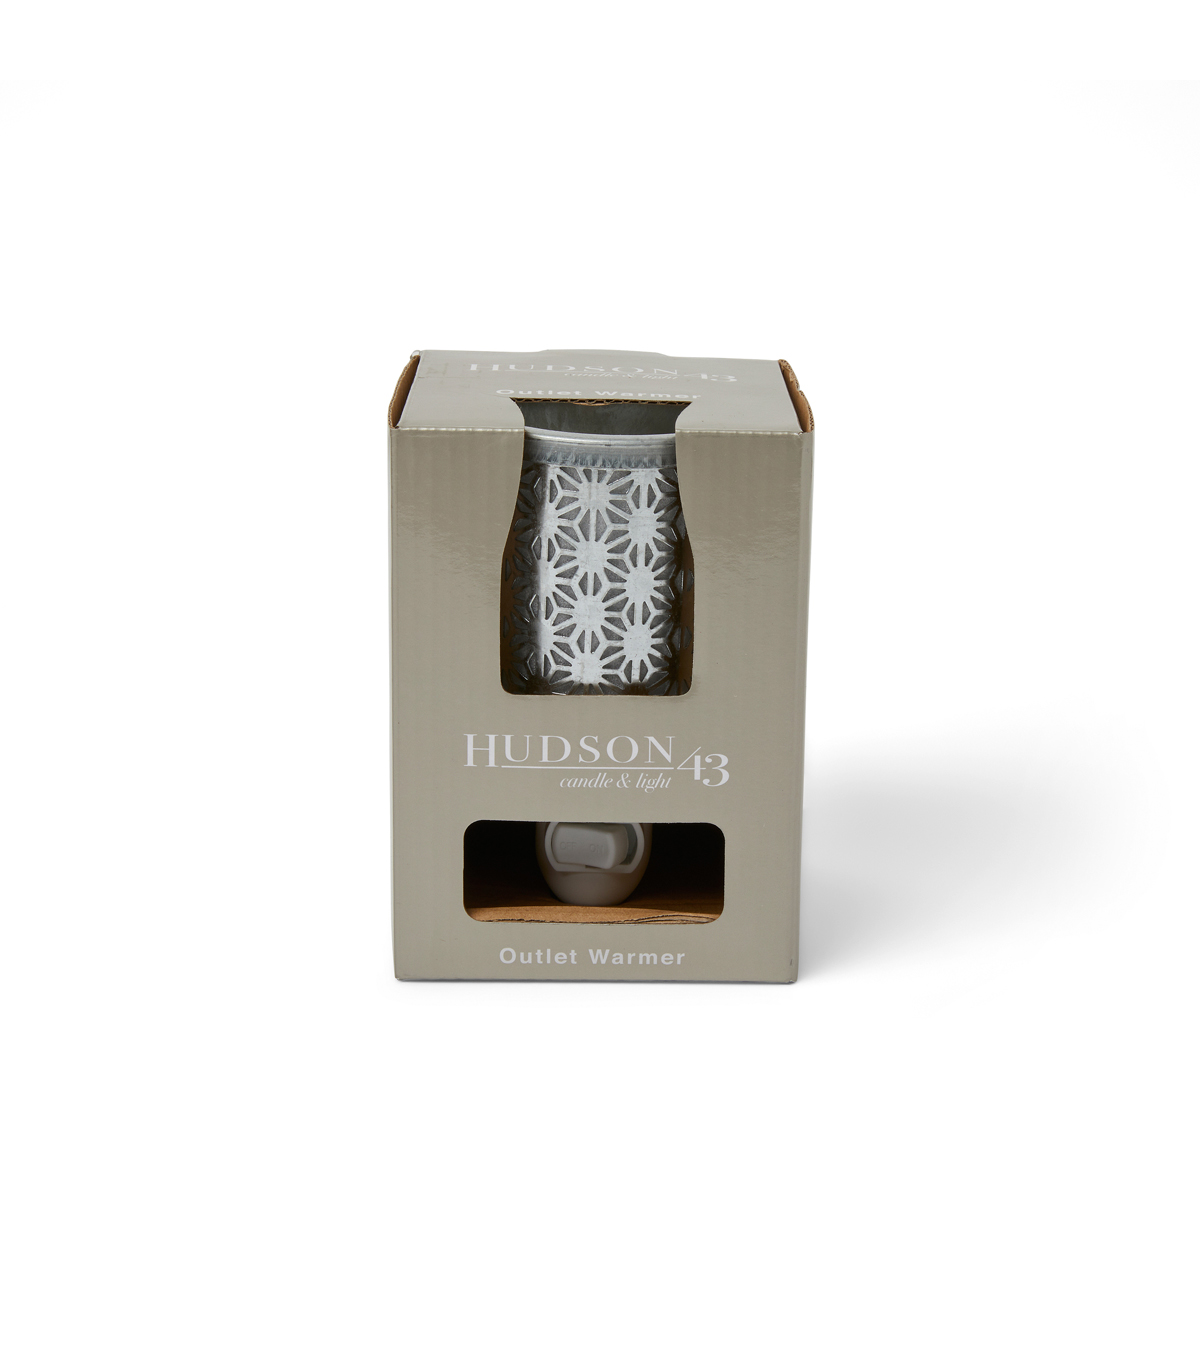 Hudson 43 Candle & Light Galvanized Plug-in Wax Warmer